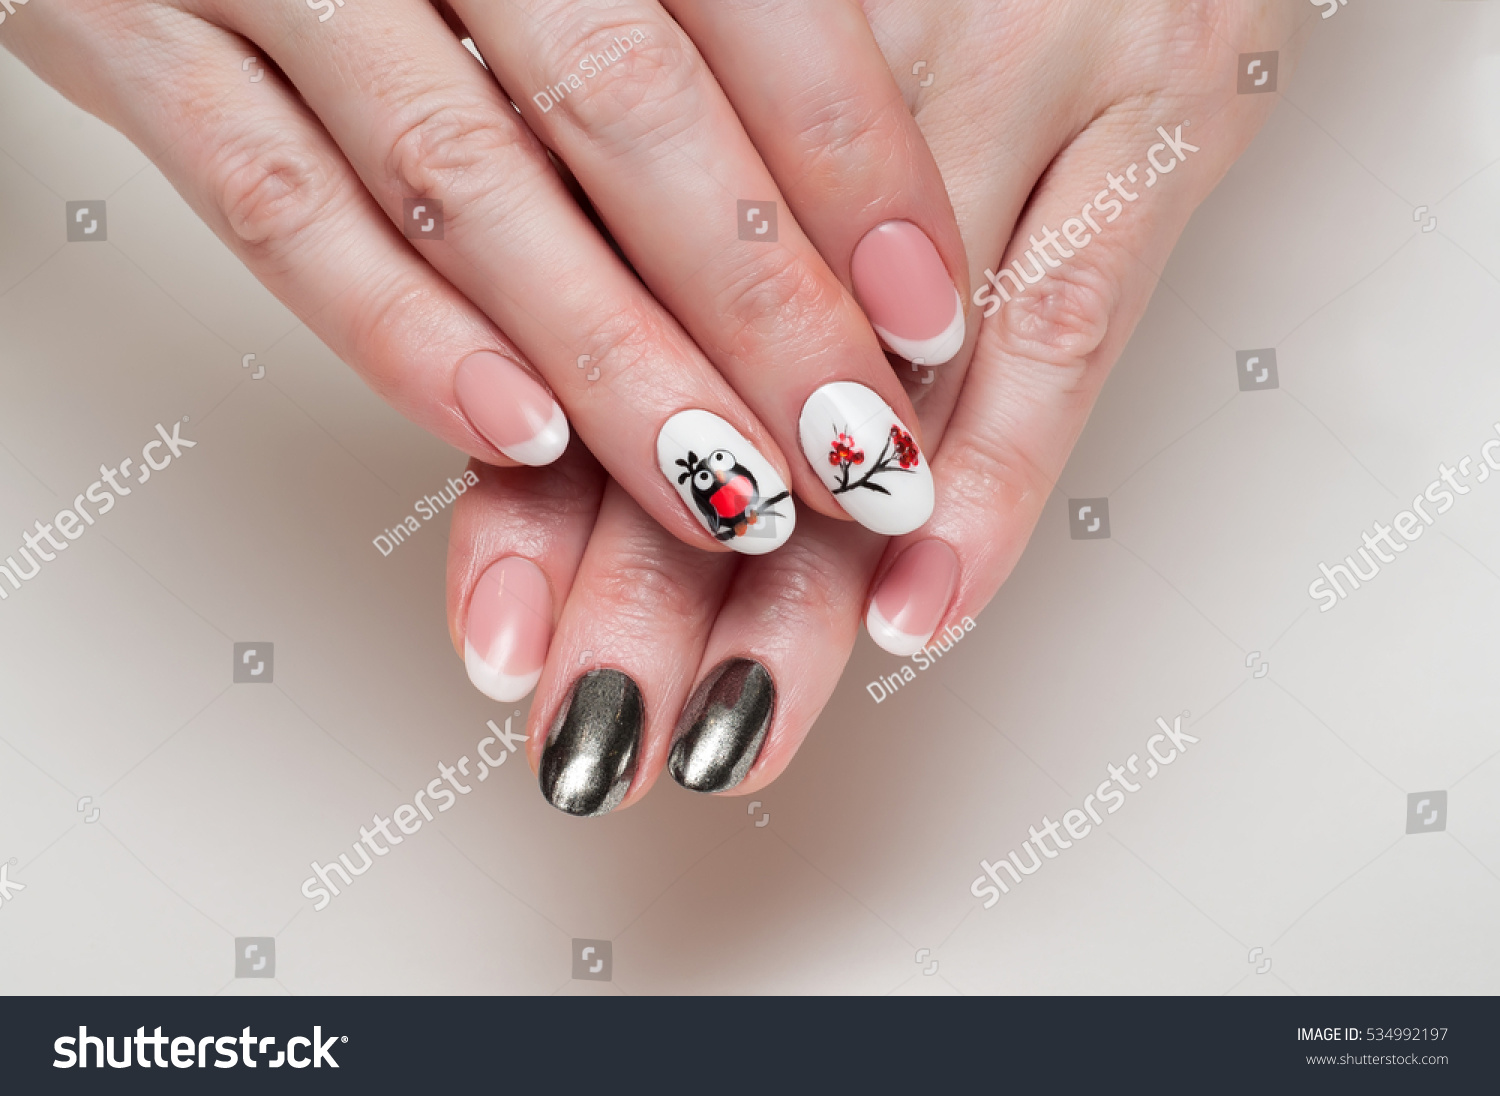 Magnificent Oval French Nails Pictures - Nail Art Ideas - morihati.com